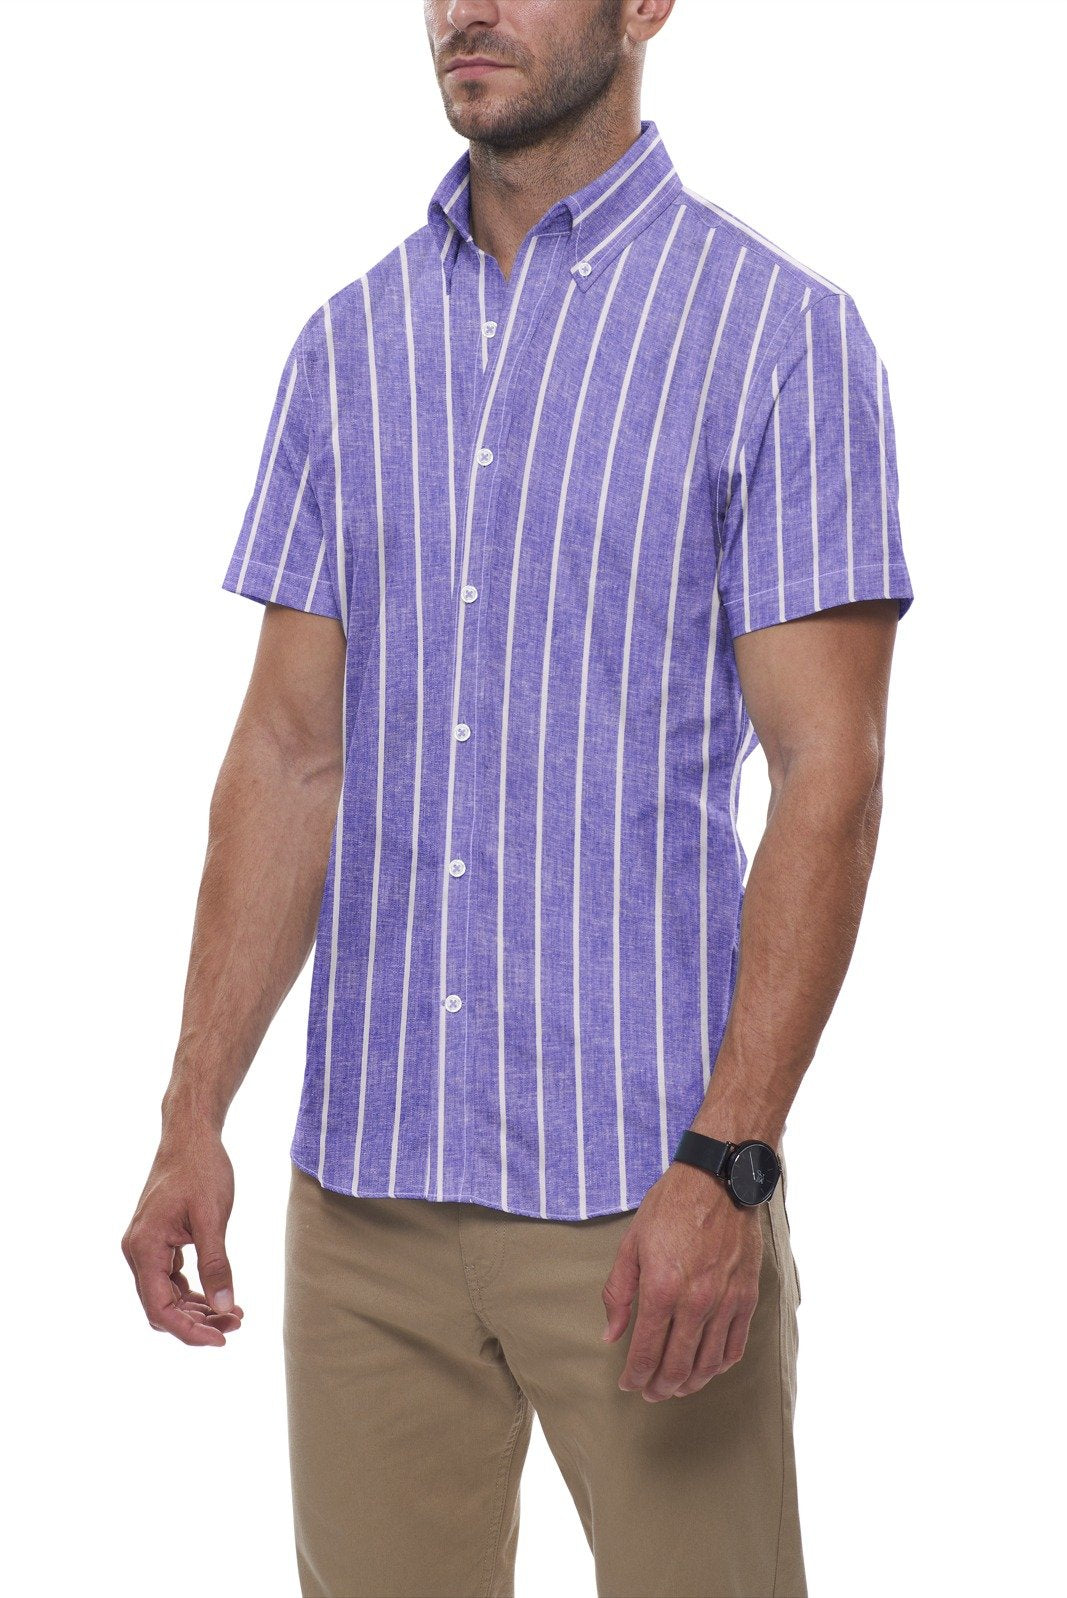 Soft Indigo Striped Cotton Linen: Semi-Spread Collar, Short Sleeve